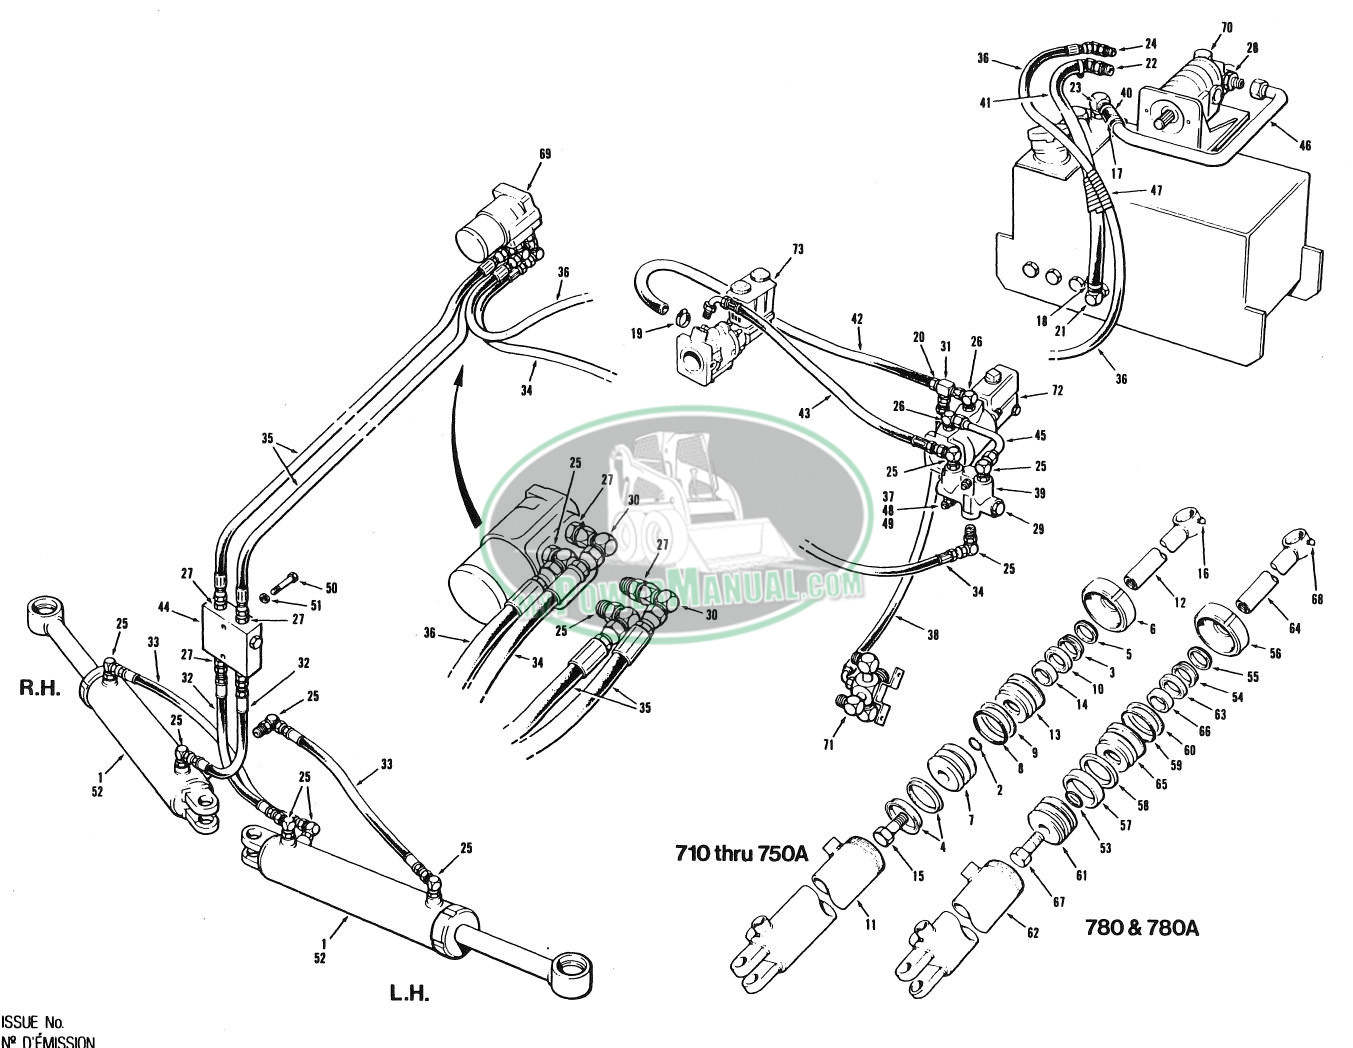 Fiat Allis Road Grader Parts The Car Tiger Truck Wiring Diagram Schematic 65 B Diagrams